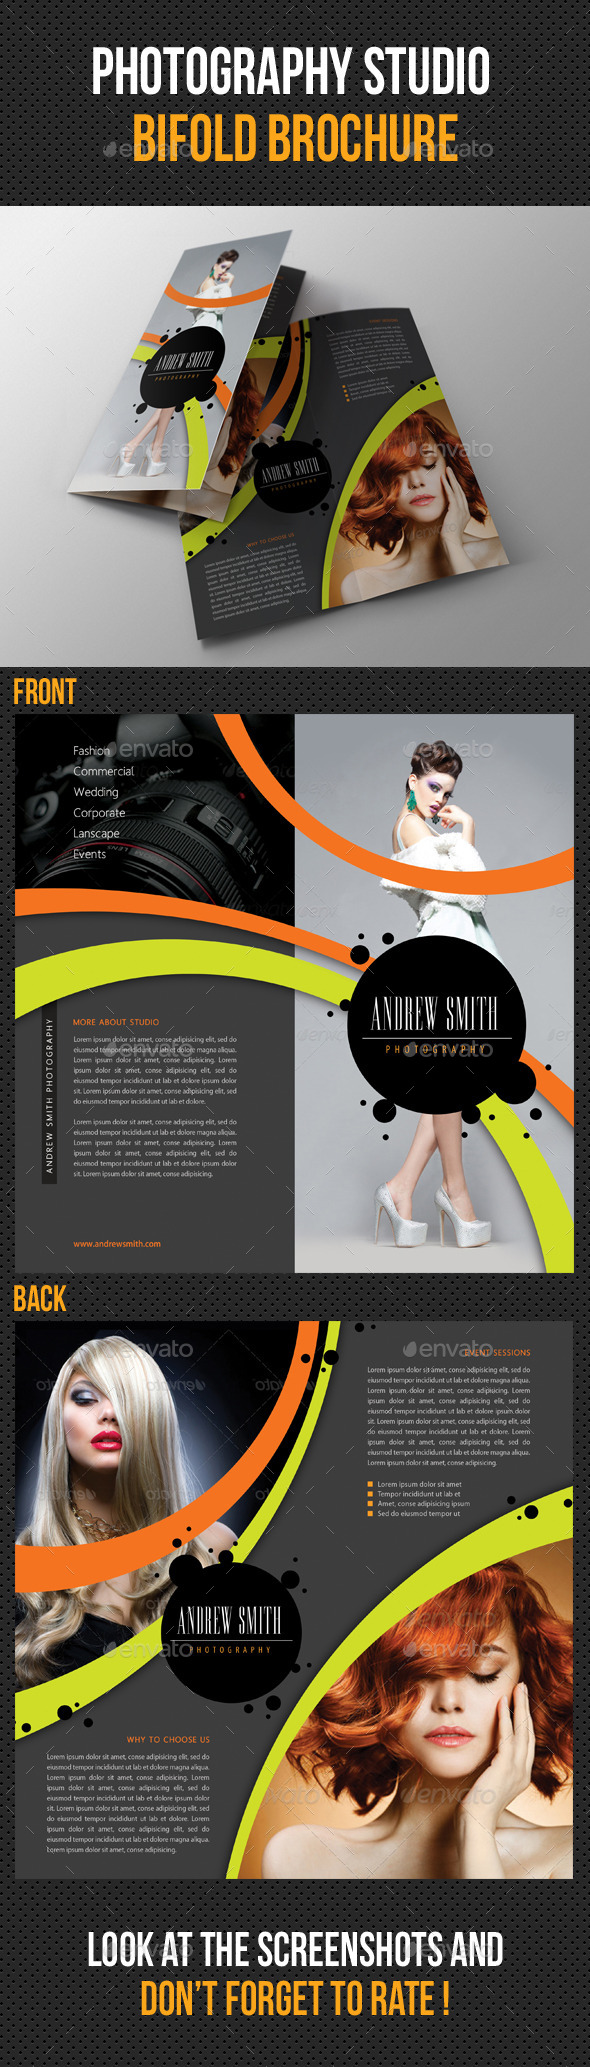 Photography Studio Bifold Brochure 04